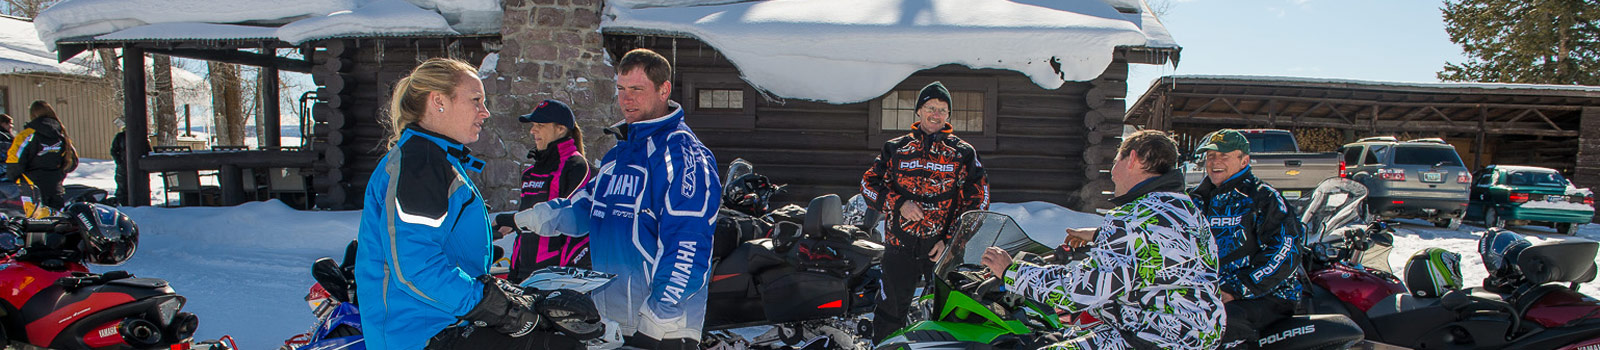 Snowmobiler groups and associatons